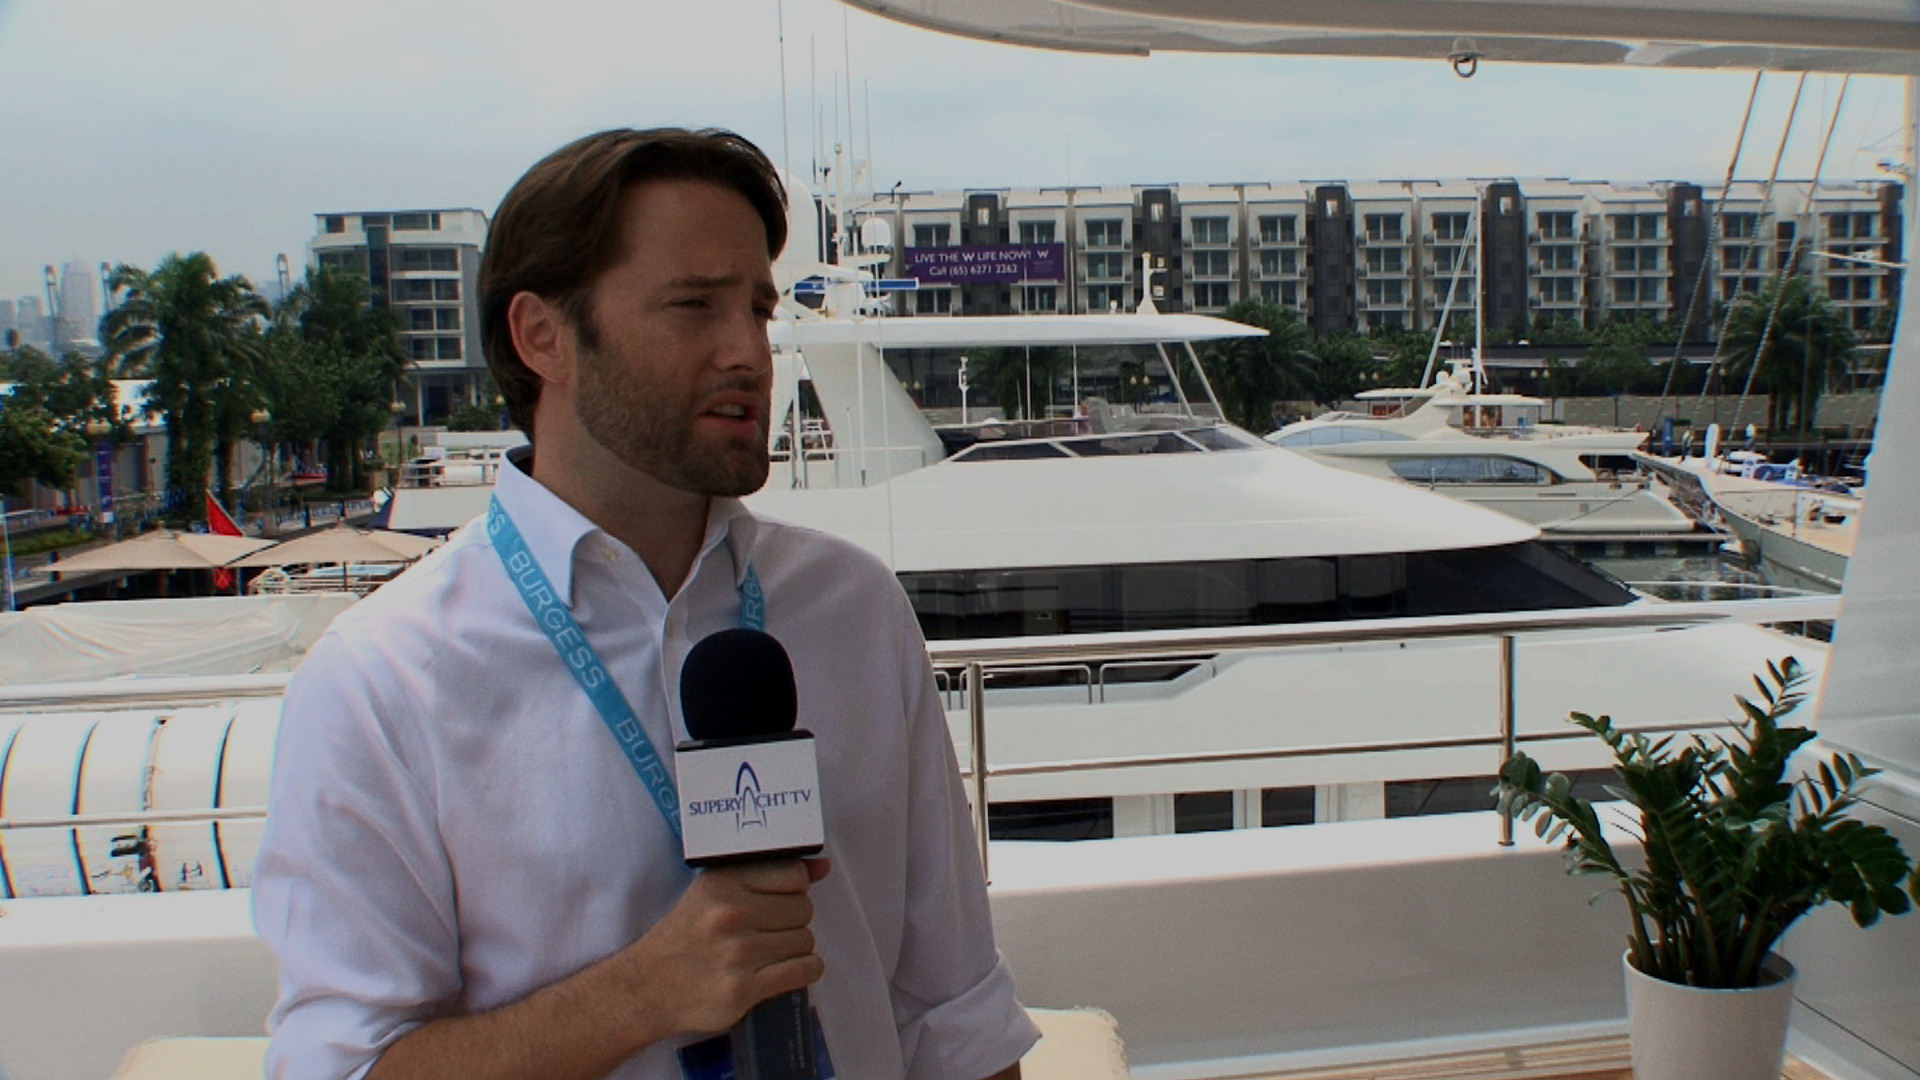 2012 Singapore Yacht Show – Charles Dence from Burgess explains everything about Helix, superyacht ownership and management in 90 seconds!